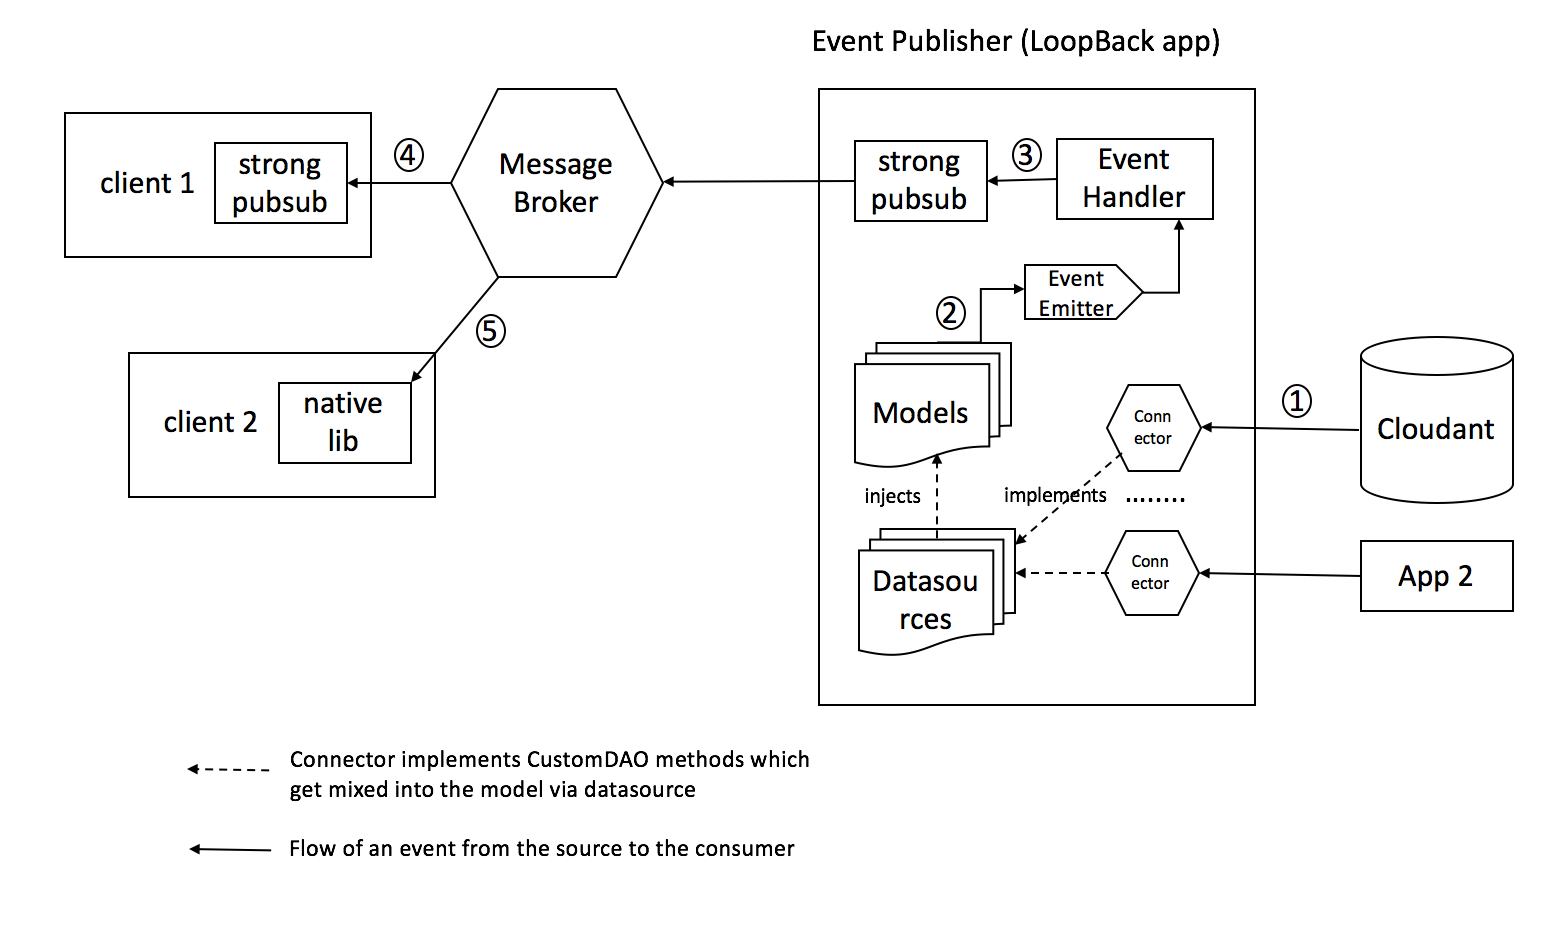 LoopBack As An Event Publisher